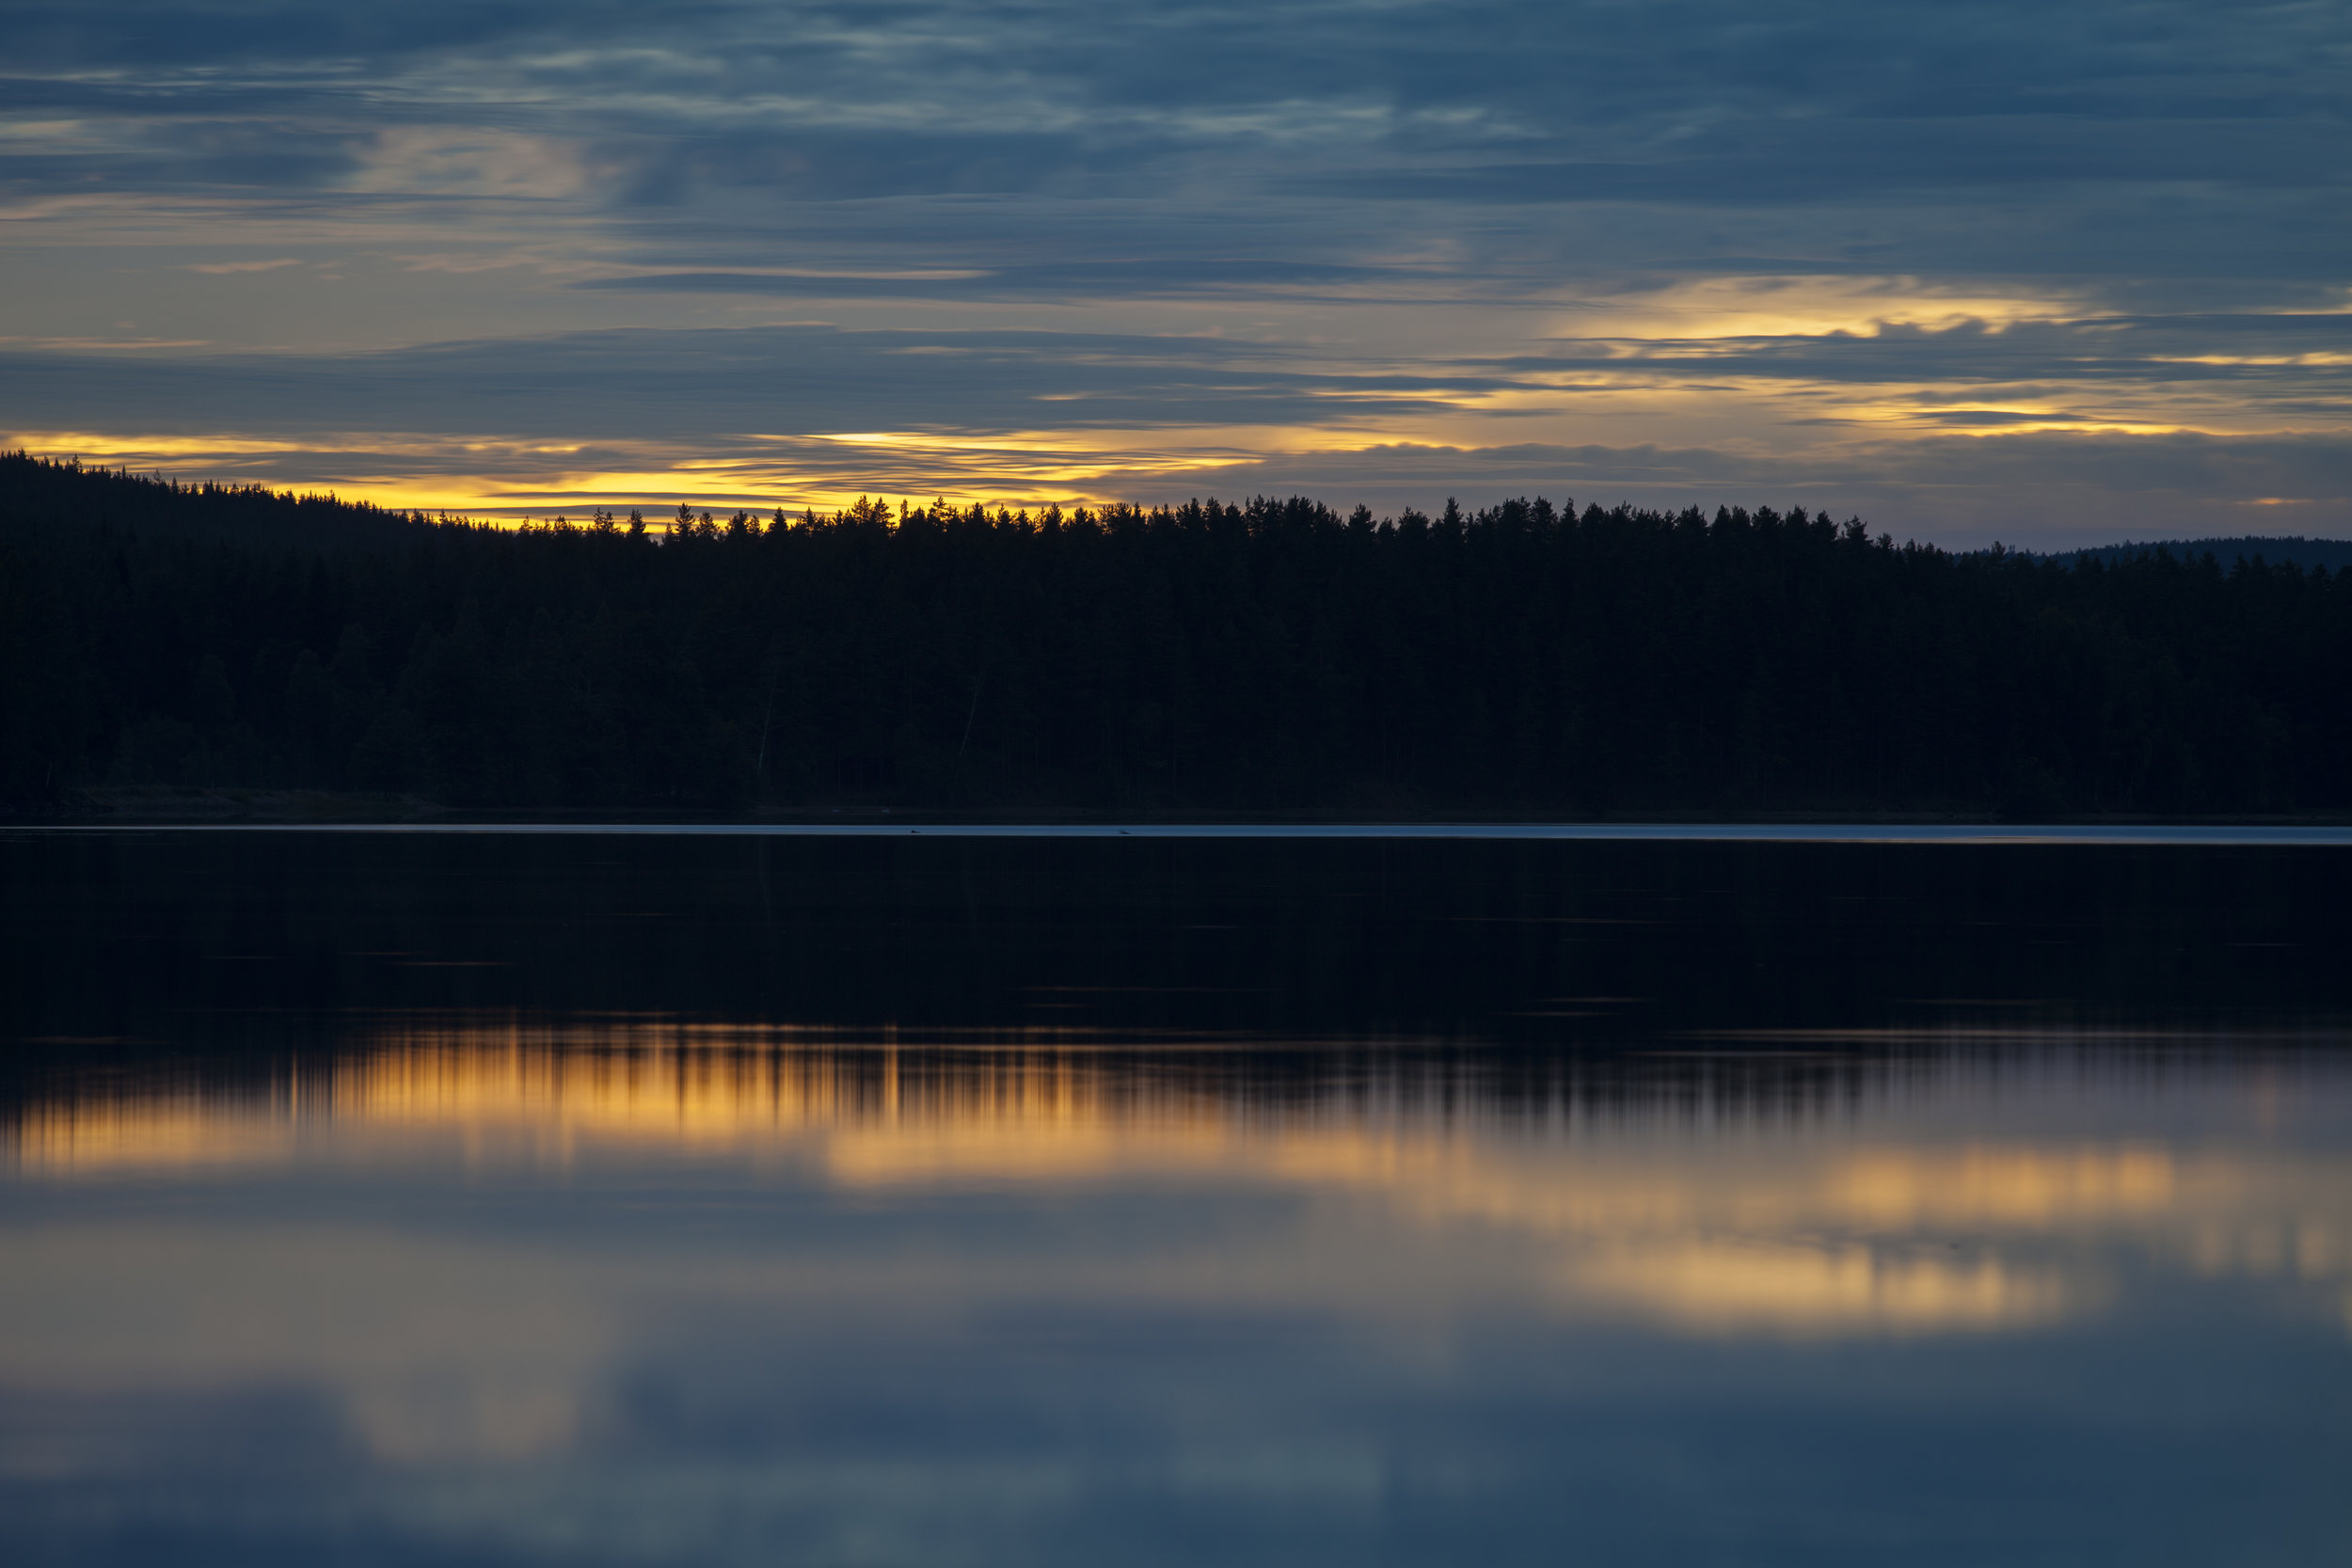 Silent lake in wolf territory. Photo: Marcus Westberg